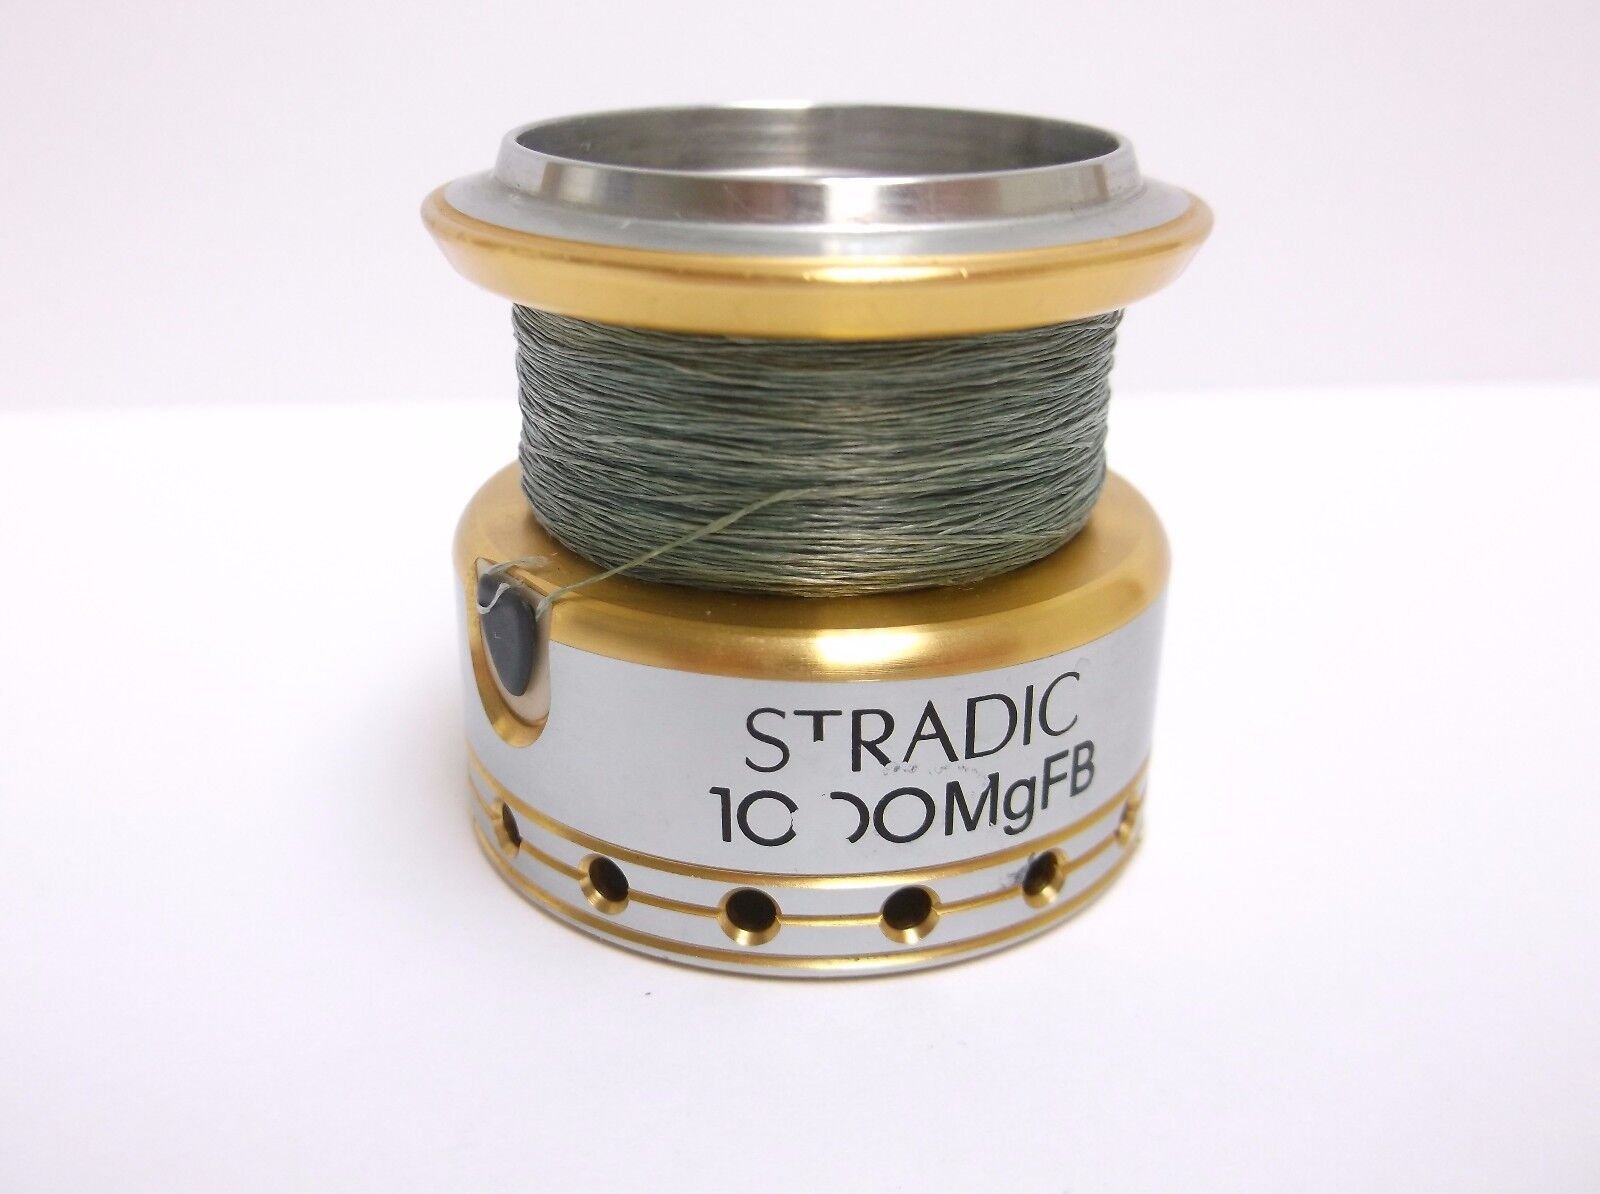 USED SHIMANO SPINNING REEL PART - Stradic 1000 MgFB - Spool Assembly  D